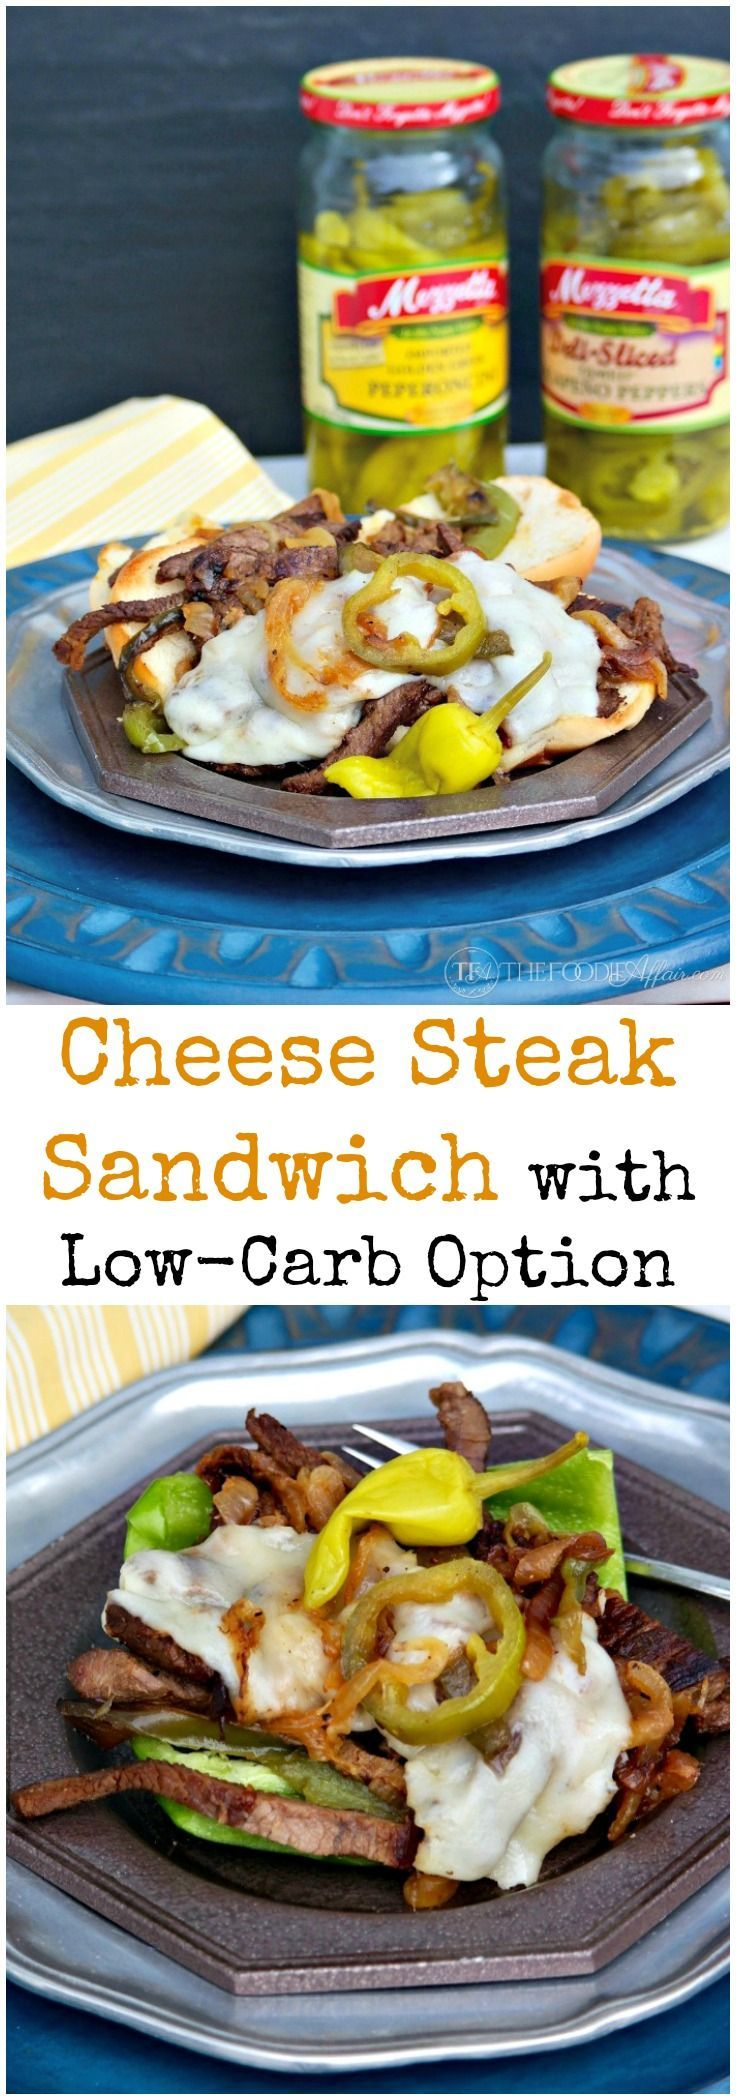 Cheese Steak Sandwich traditional Philly-style with beef, grilled onions, and melted cheese with a low carb option! Elevate the flavor with #Mezzetta jalapeno peppers and peperoncinis! #Ad #BoldBrightSummer